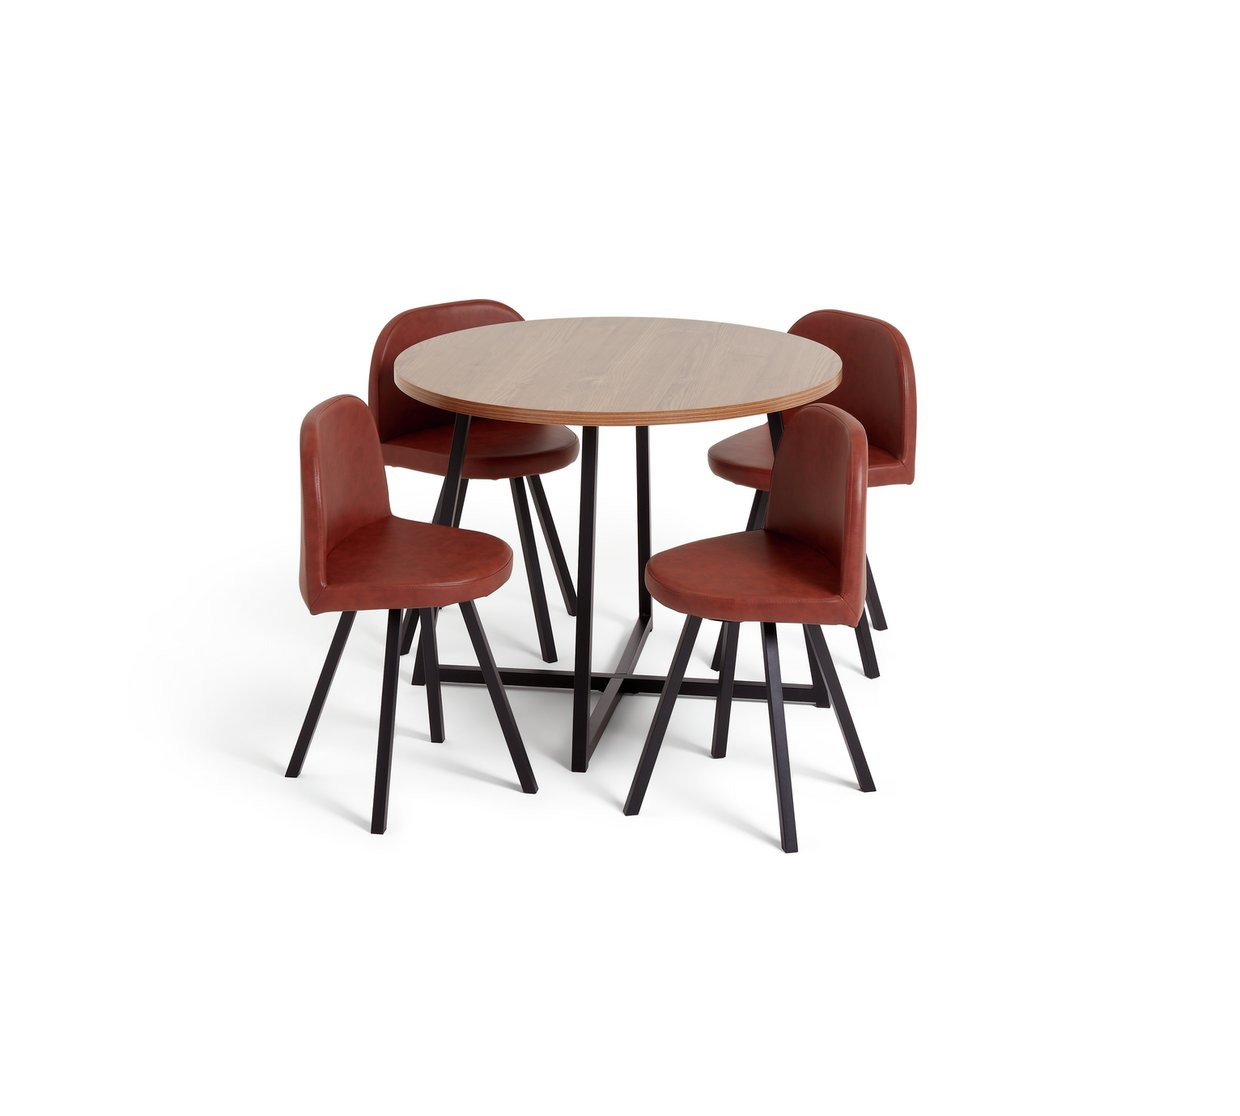 269e707edd662 Argos Home Nomad Space Saving Dining Table and 4 Chairs